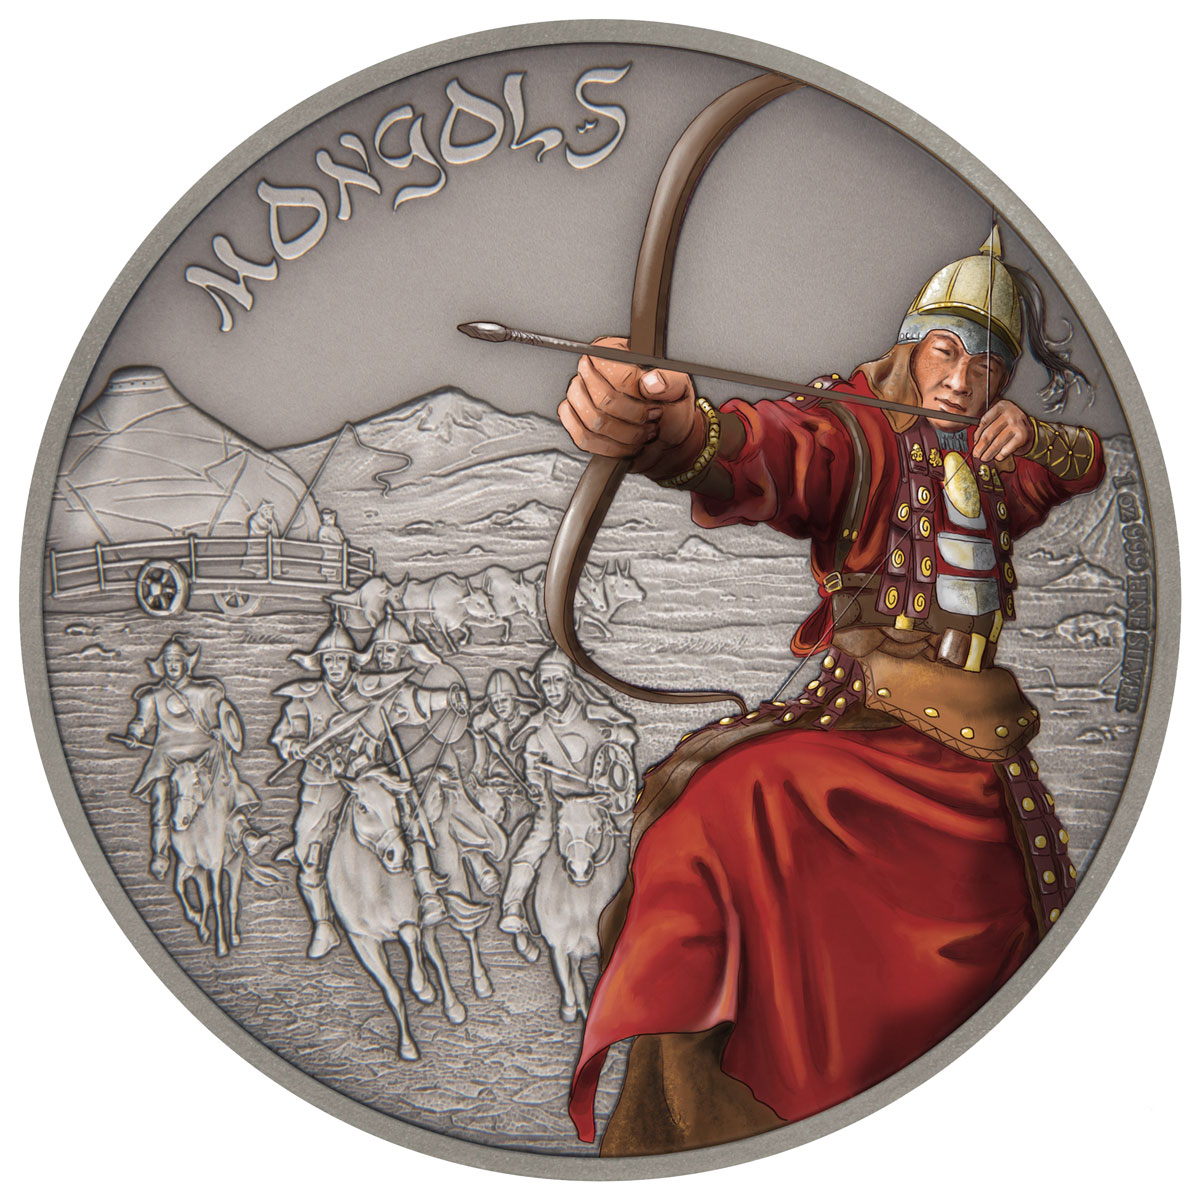 2017 Niue Warriors of History - Mongols 1 oz Silver Antiqued Colorized Proof $2 Coin GEM Proof OGP